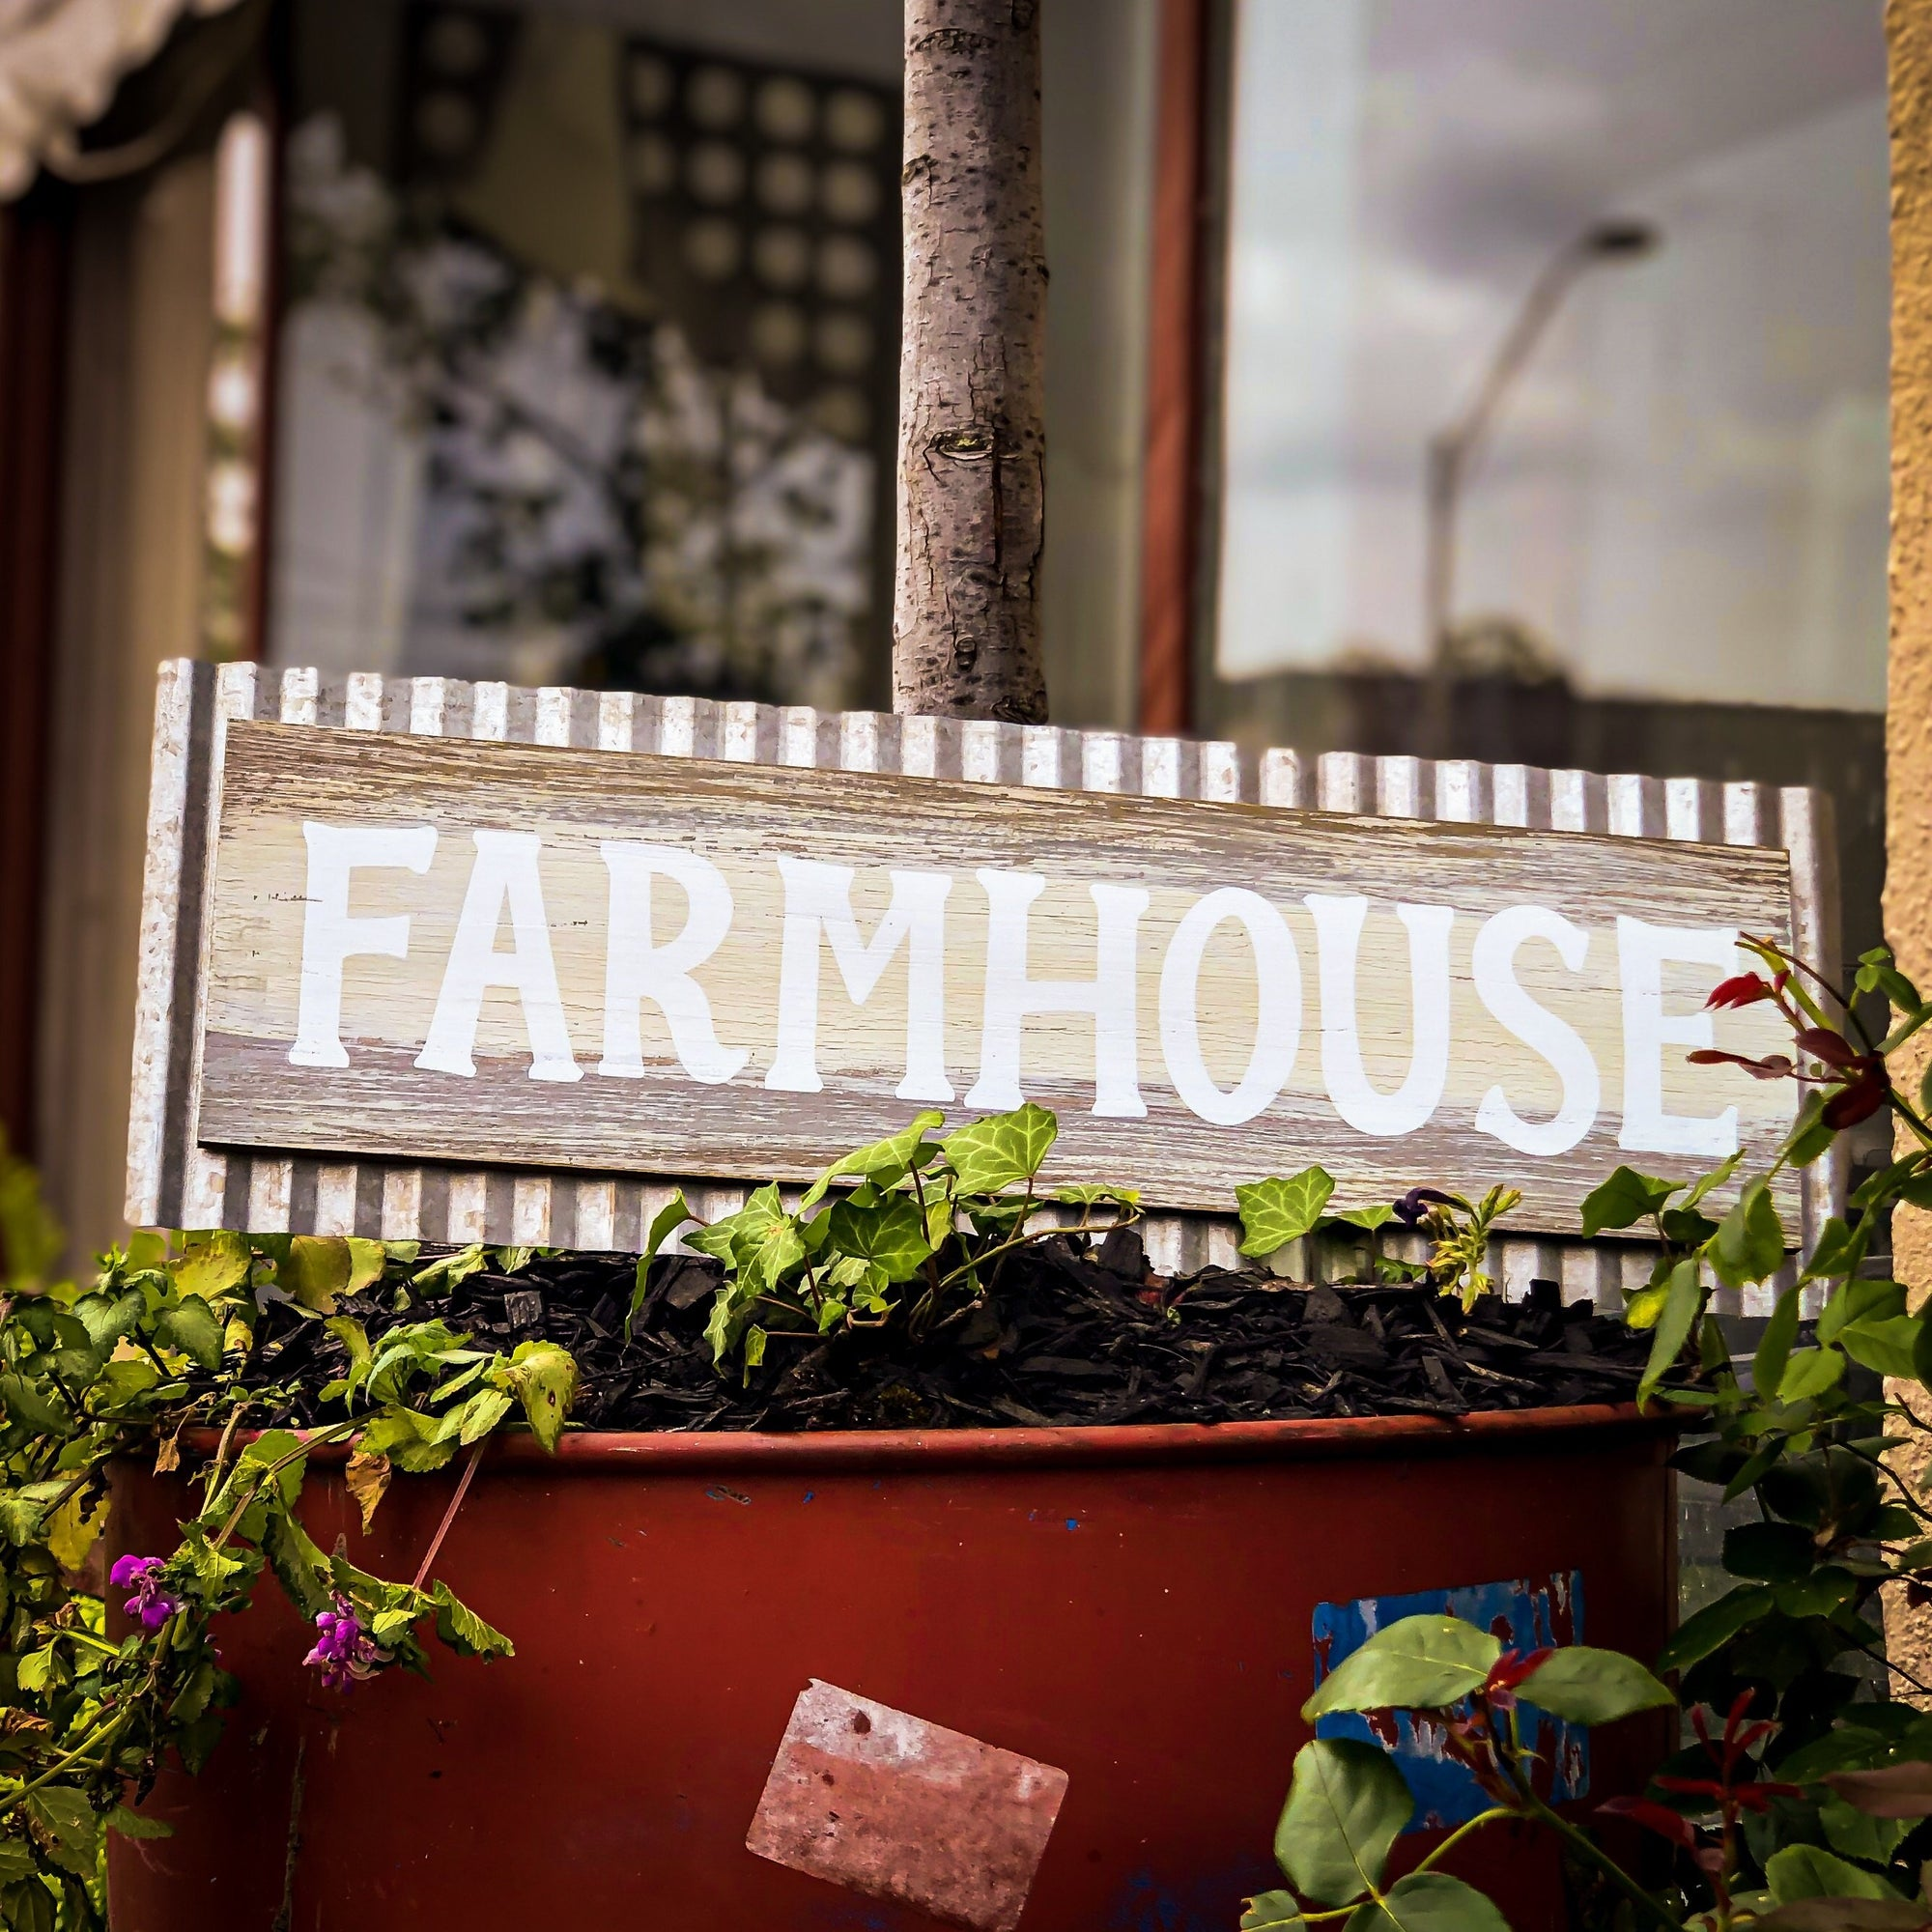 Buy Farmhouse Antique Weathered Wall Art from Walking Pants Curiosities, the Most un-General Gift Store in Downtown Memphis, Tennessee!